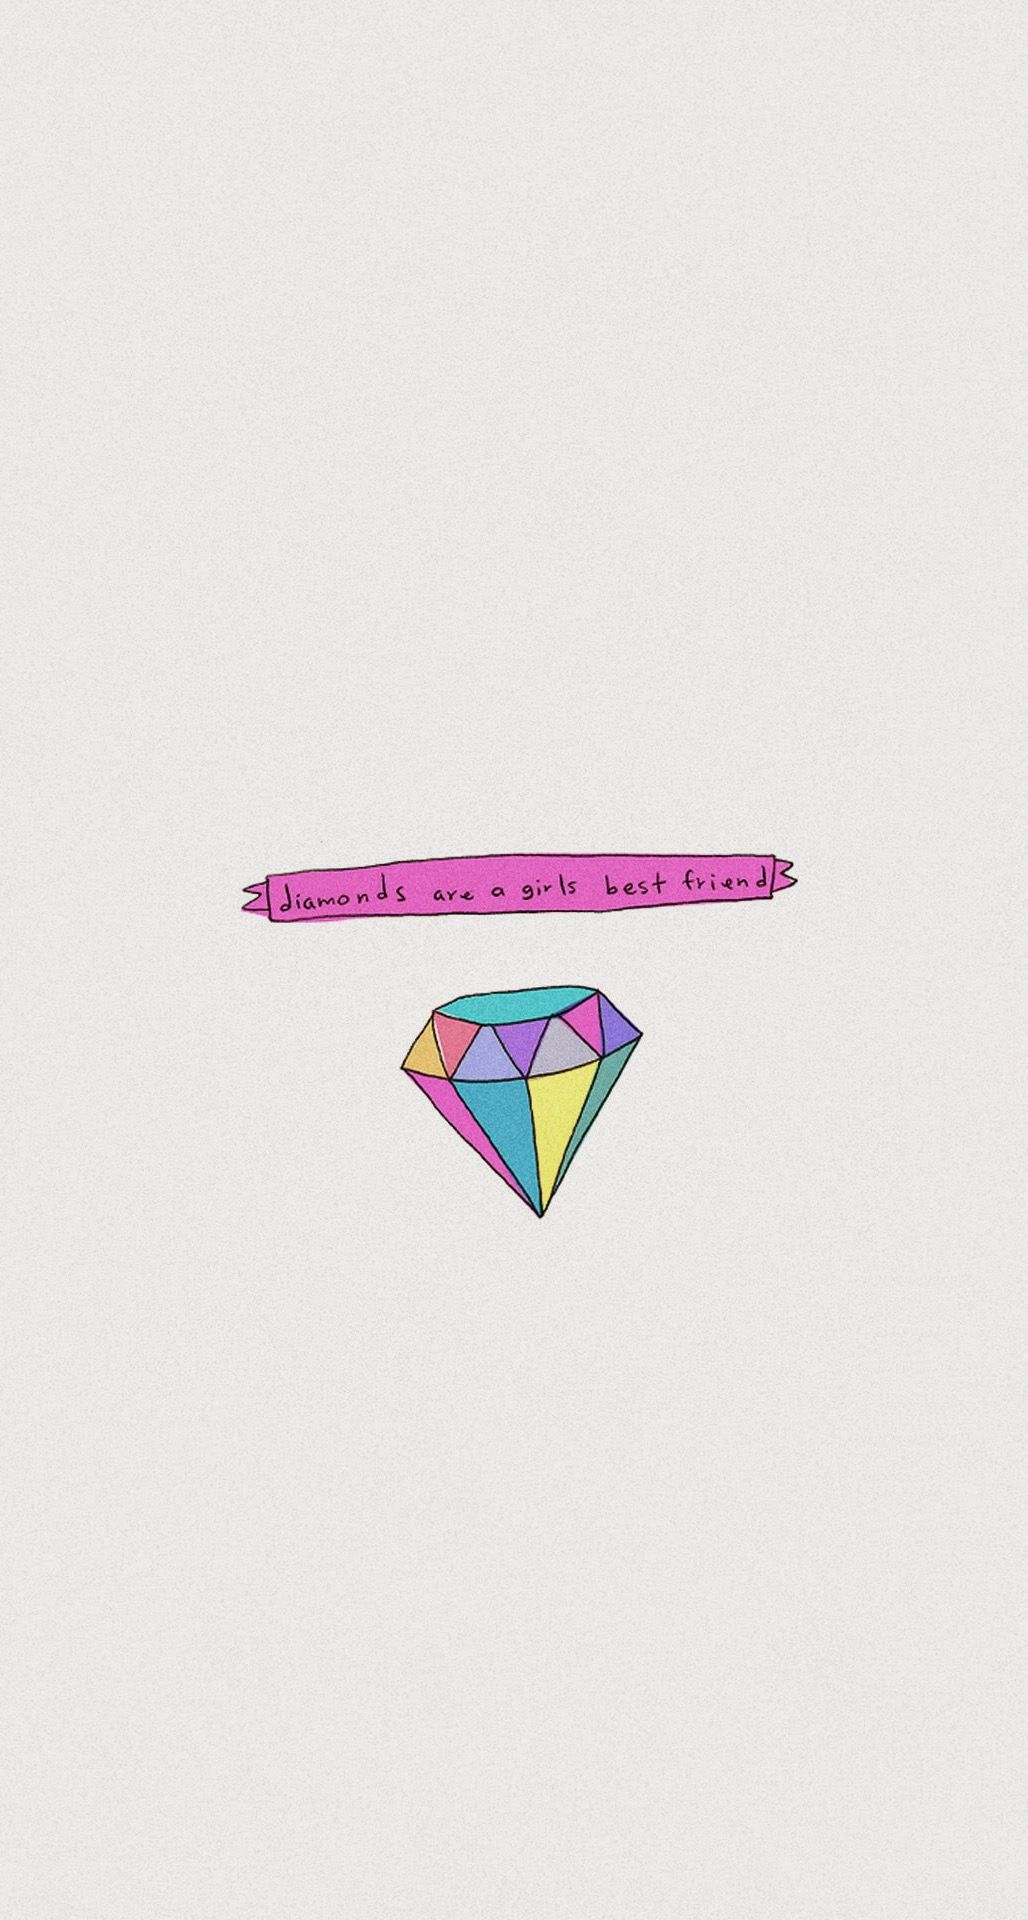 Minimal Grey Pink Diamonds Gem Jewel Iphone Wallpaper Phone Background Lock Screen